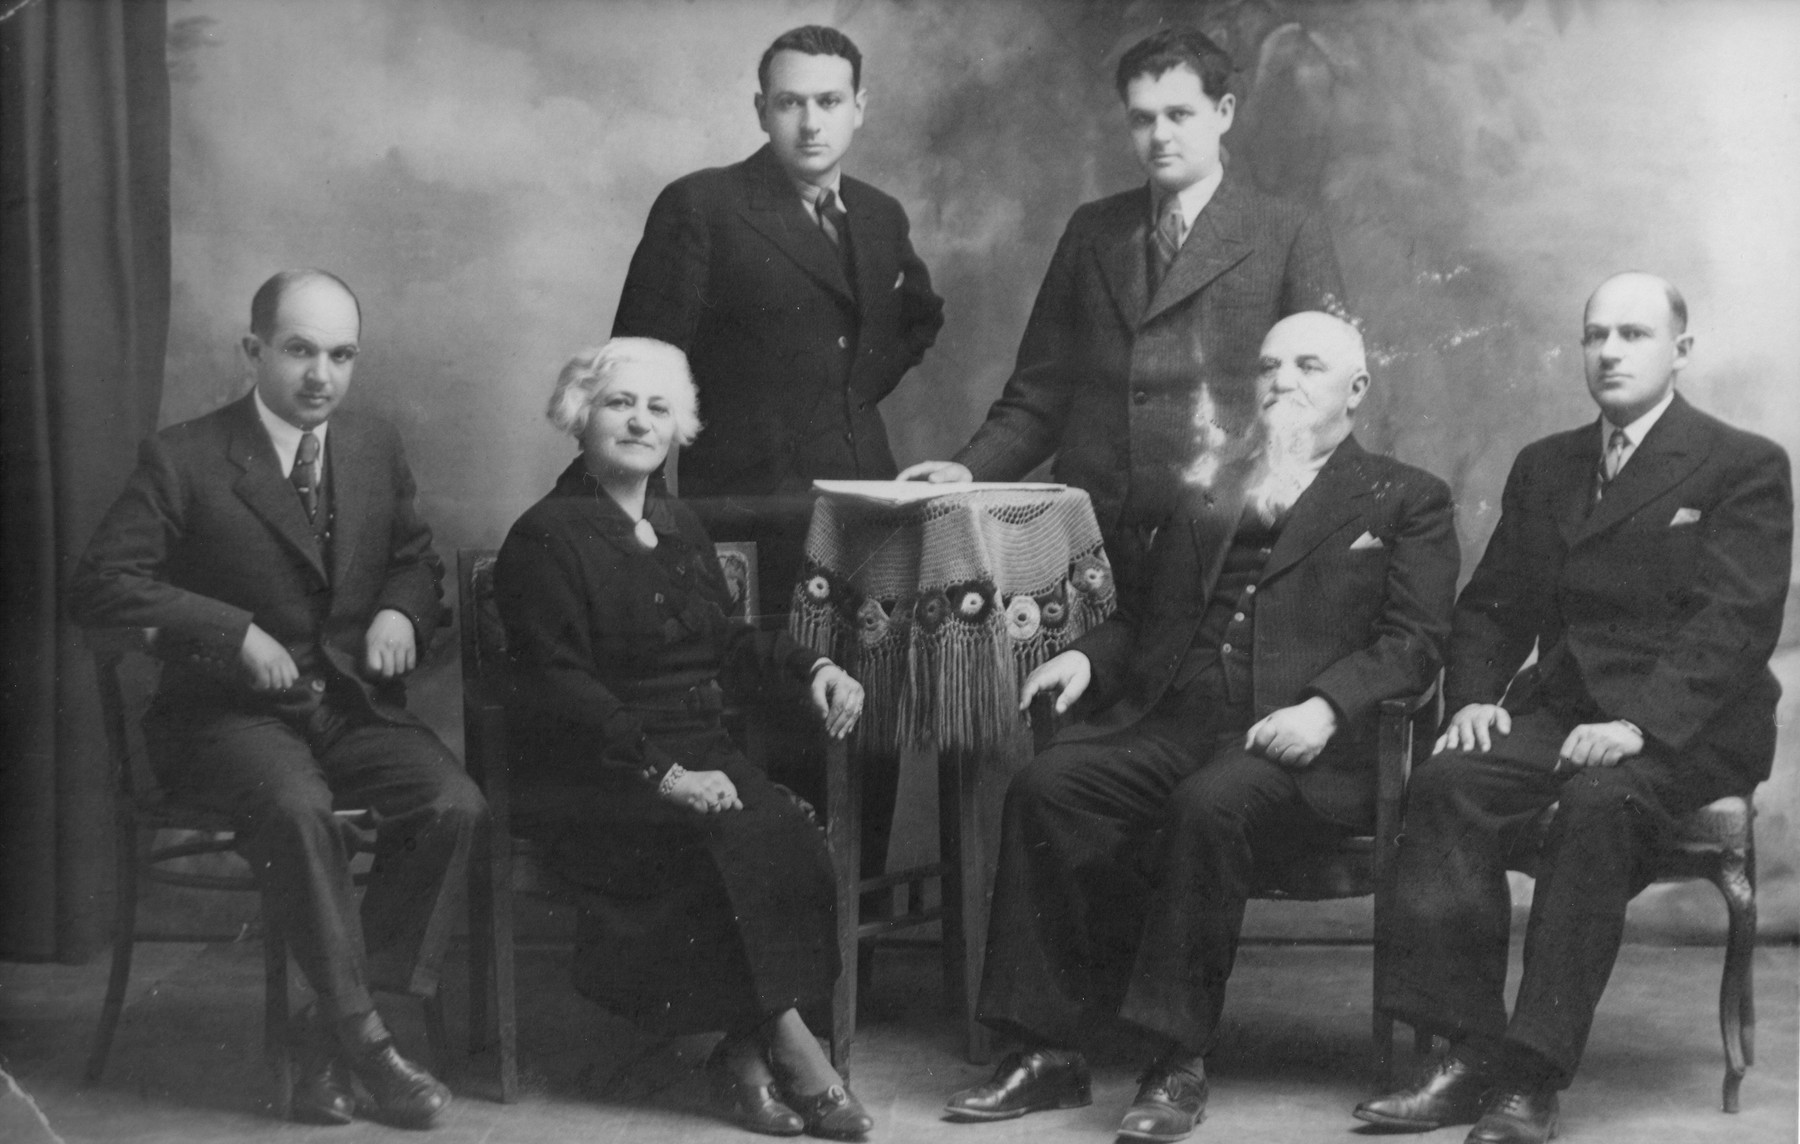 Portrait of the Preiss family in Kotoriba, Yugoslavia. Pictured are Samu and Helen Rosenfeld Preiss and their four grown sons: Pista, Jani, Laci, and Bubi.  Samu and Helen were the donor's uncle and aunt.